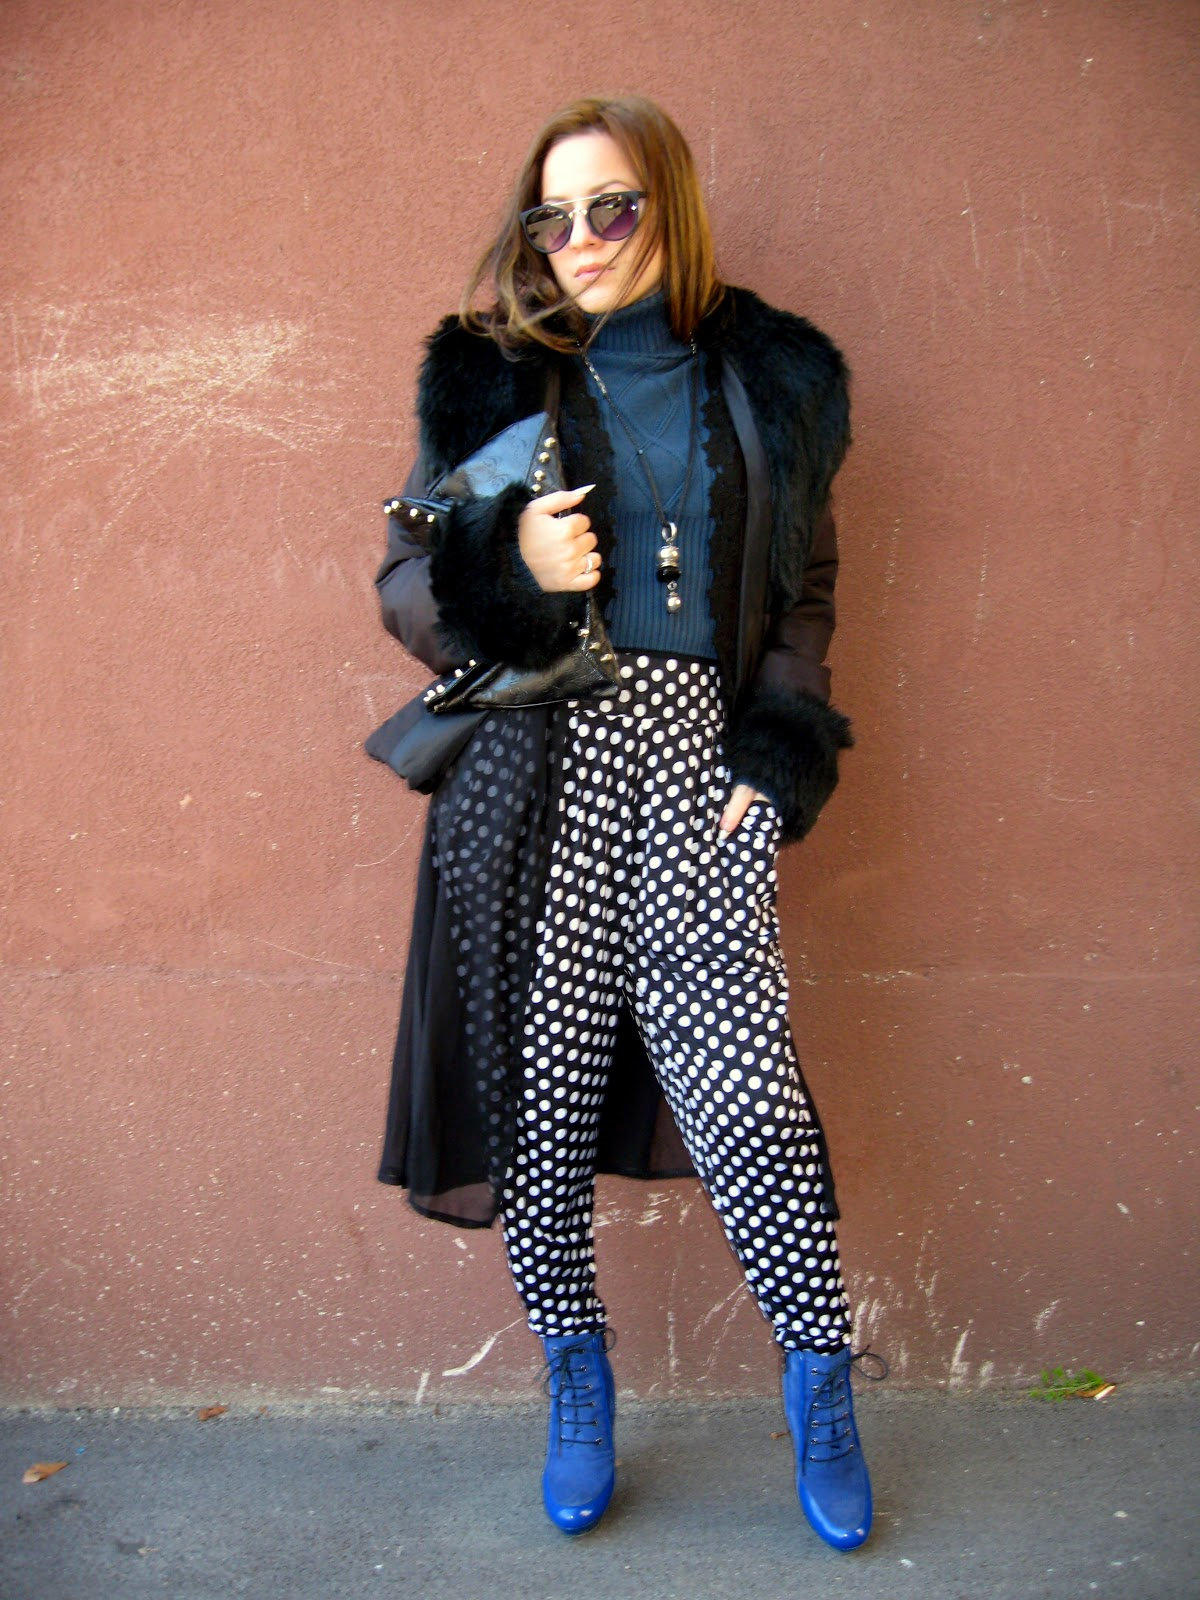 outfit, blue turtleneck sweater, baggy pants with polka dots, black crochet lace kimono, black faux fur jacket, black studded clutch, blue boots